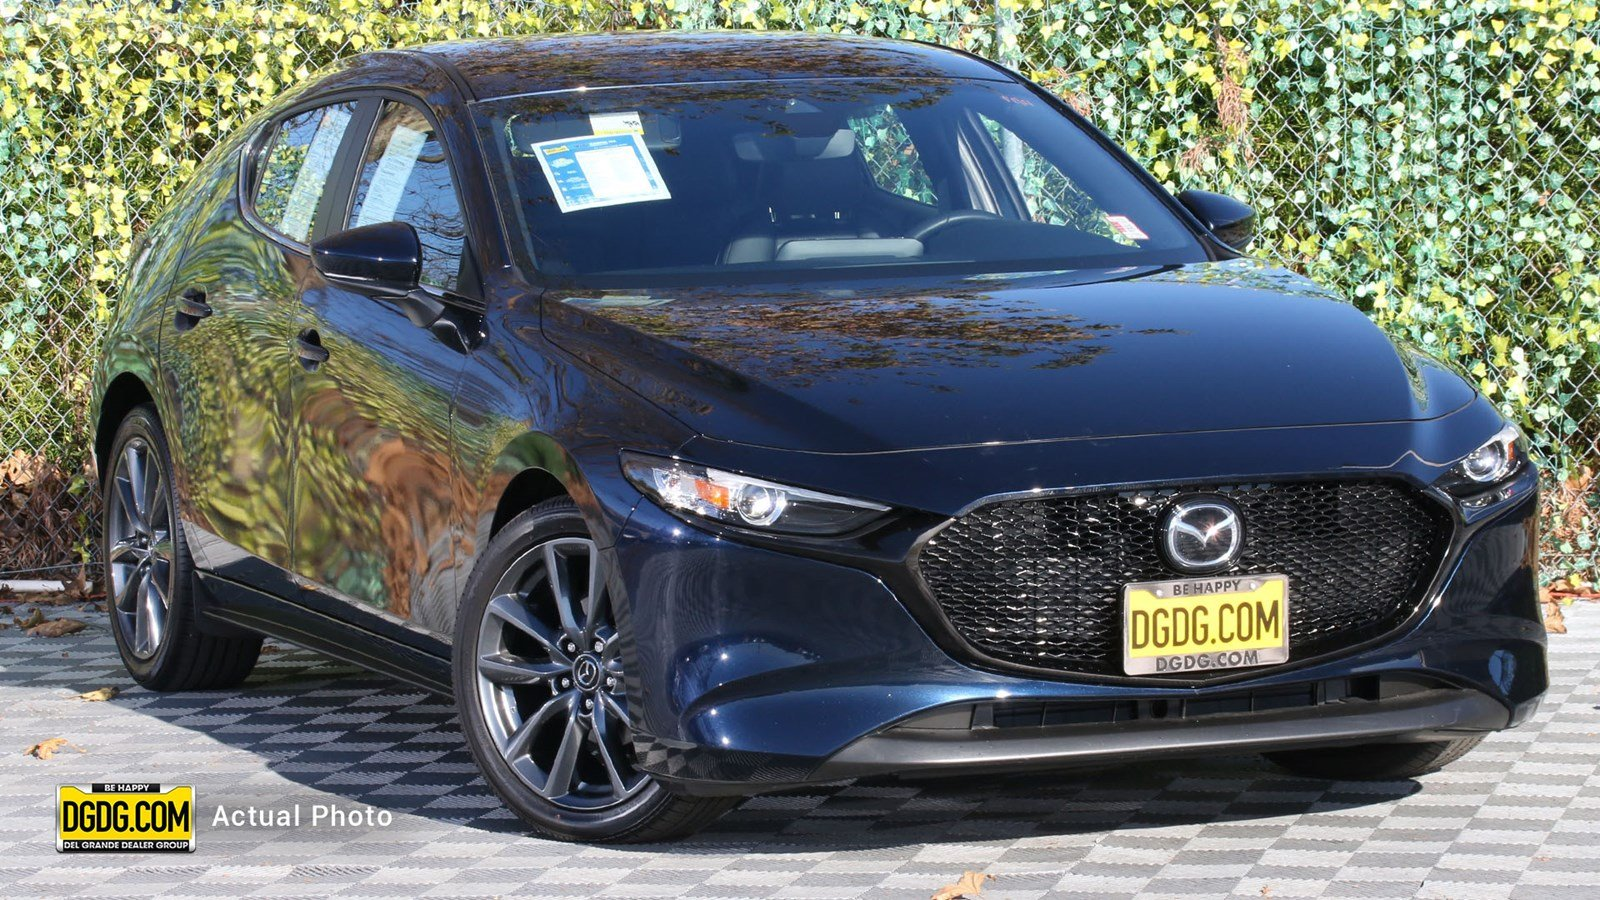 Pre-Owned 2019 Mazda3 Hatchback Base